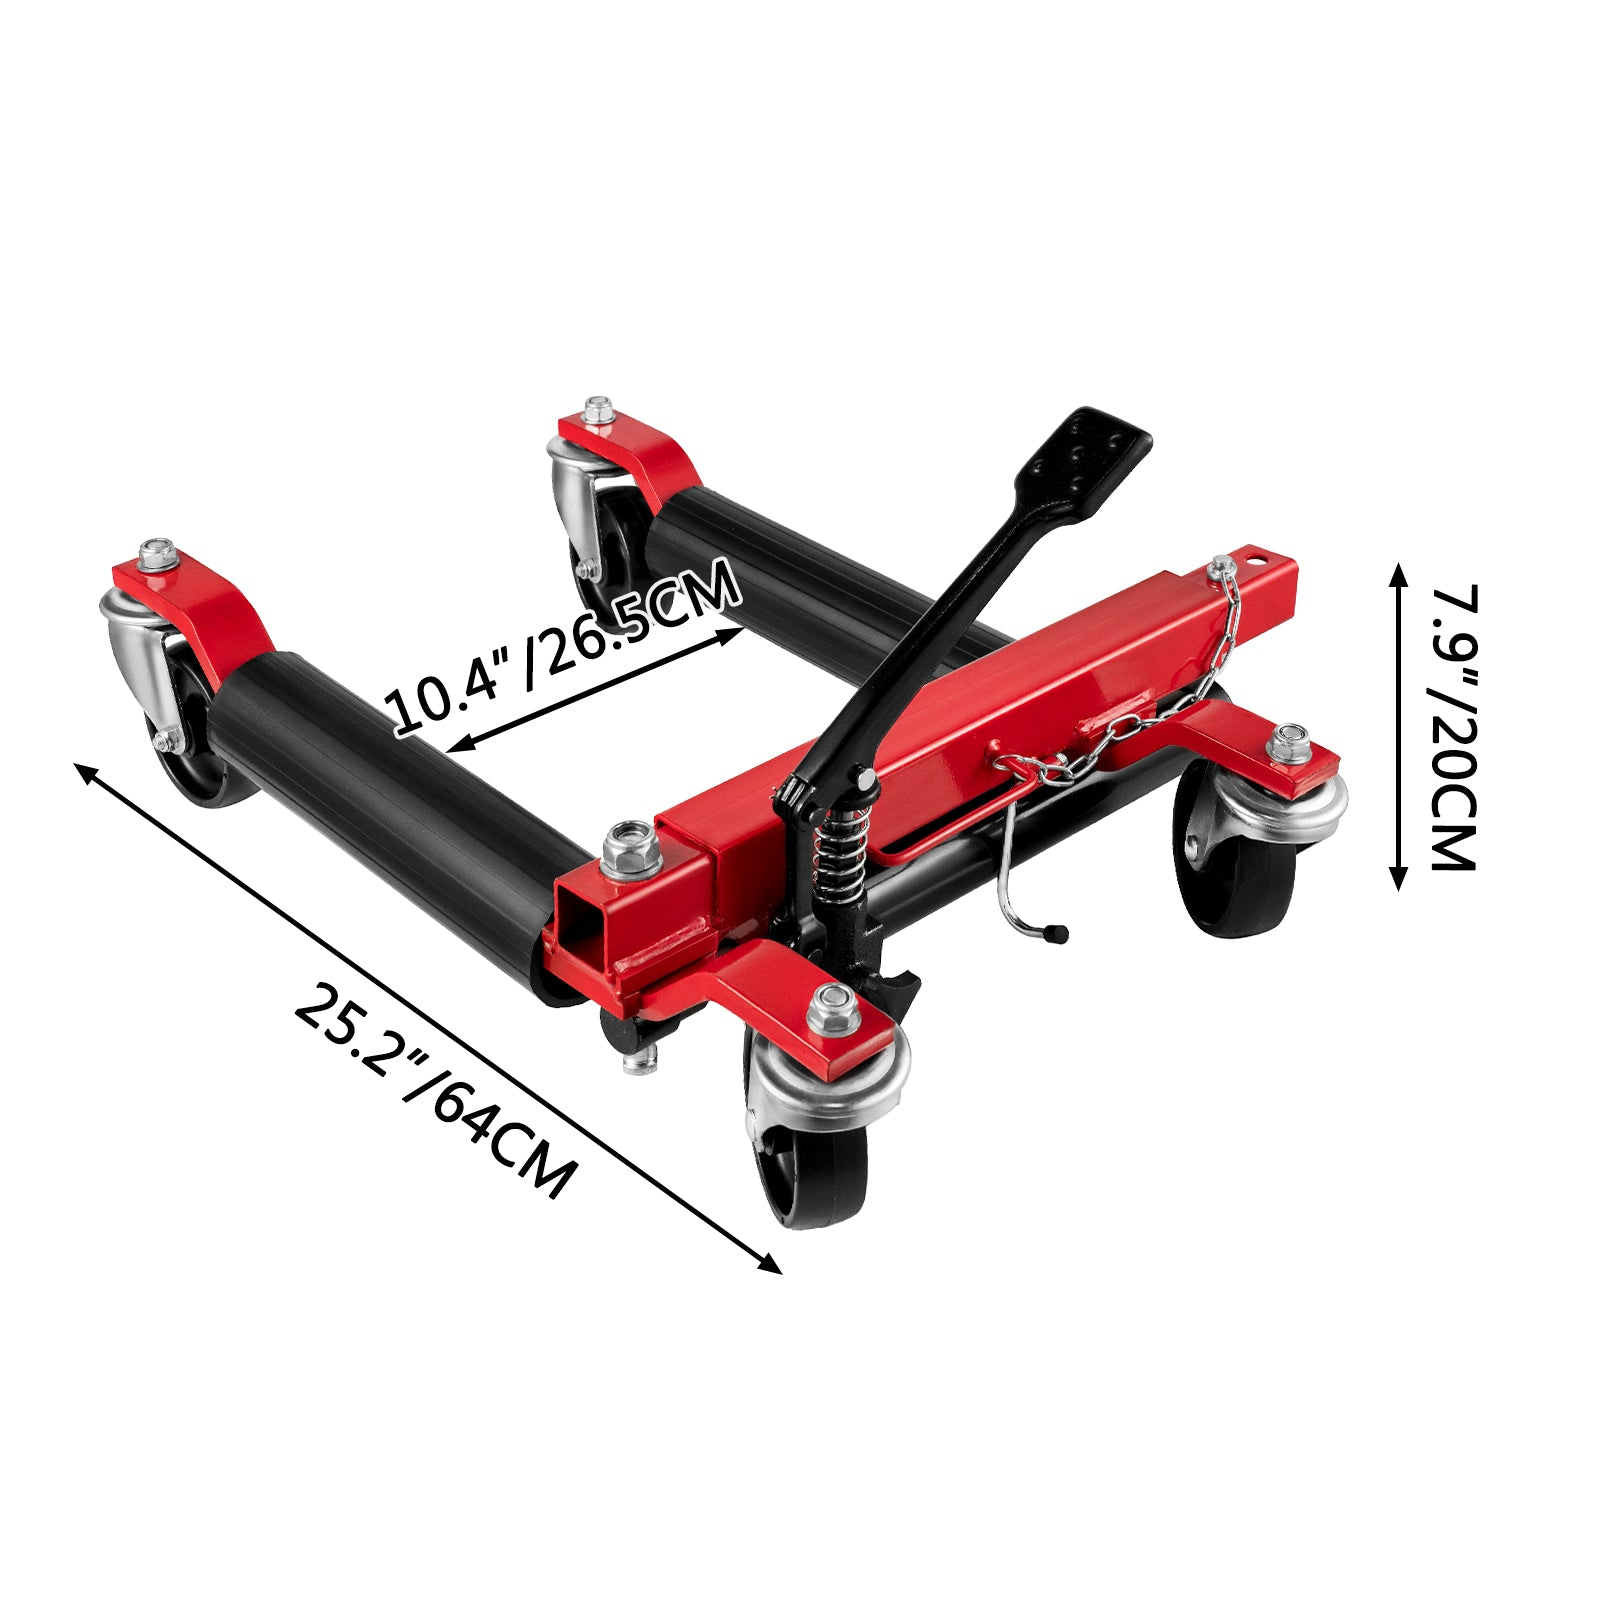 Vevor Wheel Dolly Car Dolly 1500 Lbs Car Jack Dolly Hydraulic Wheel Jack For Car